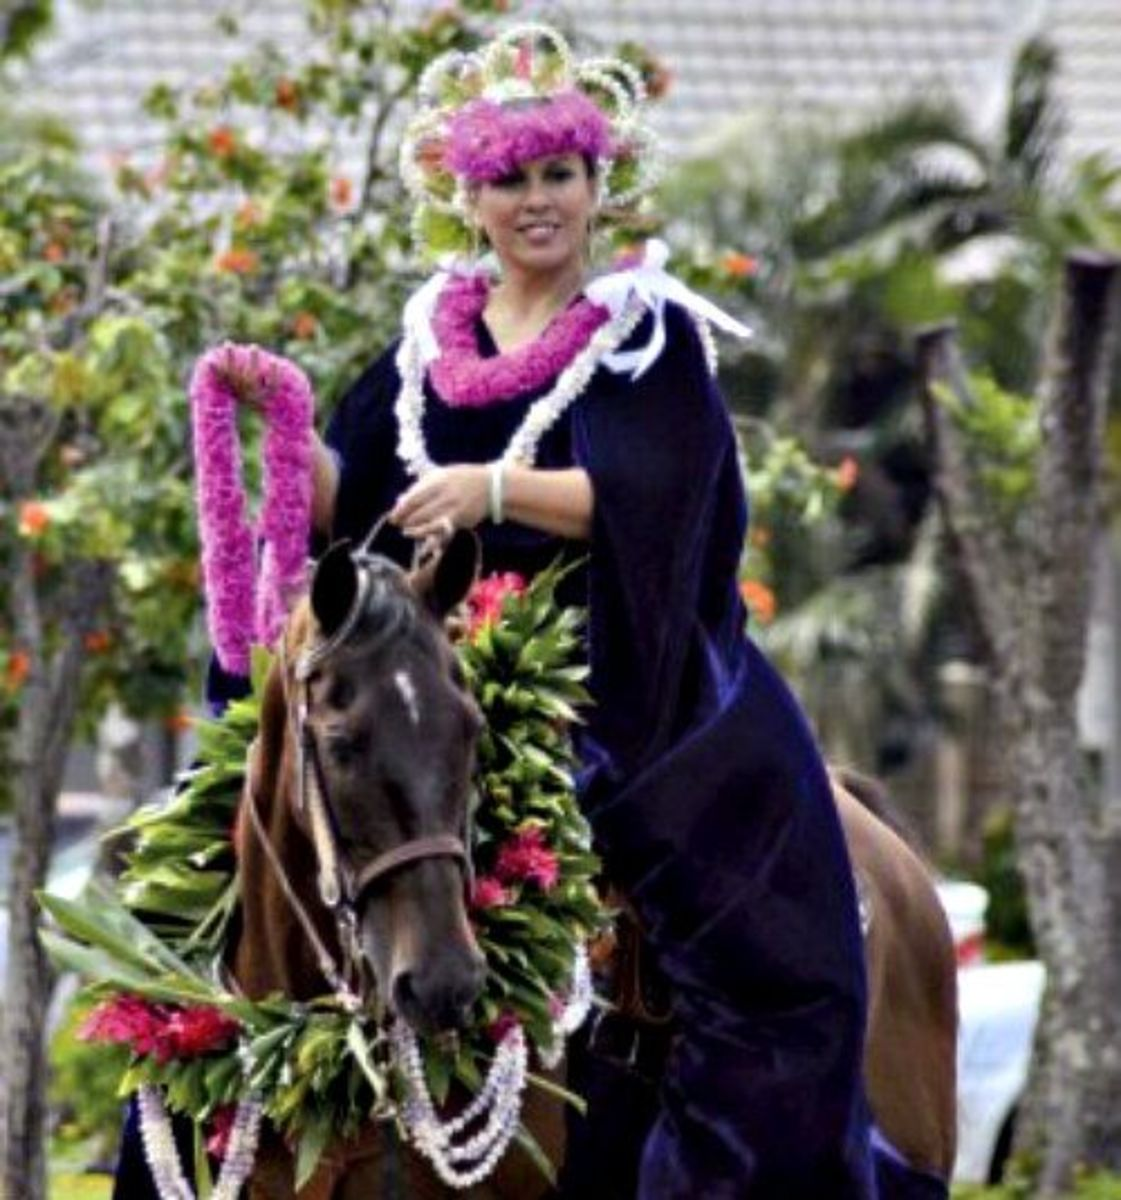 Pau Princess Rider Representing Island of Kauai in Kauai's King Kamehameha Day Parade